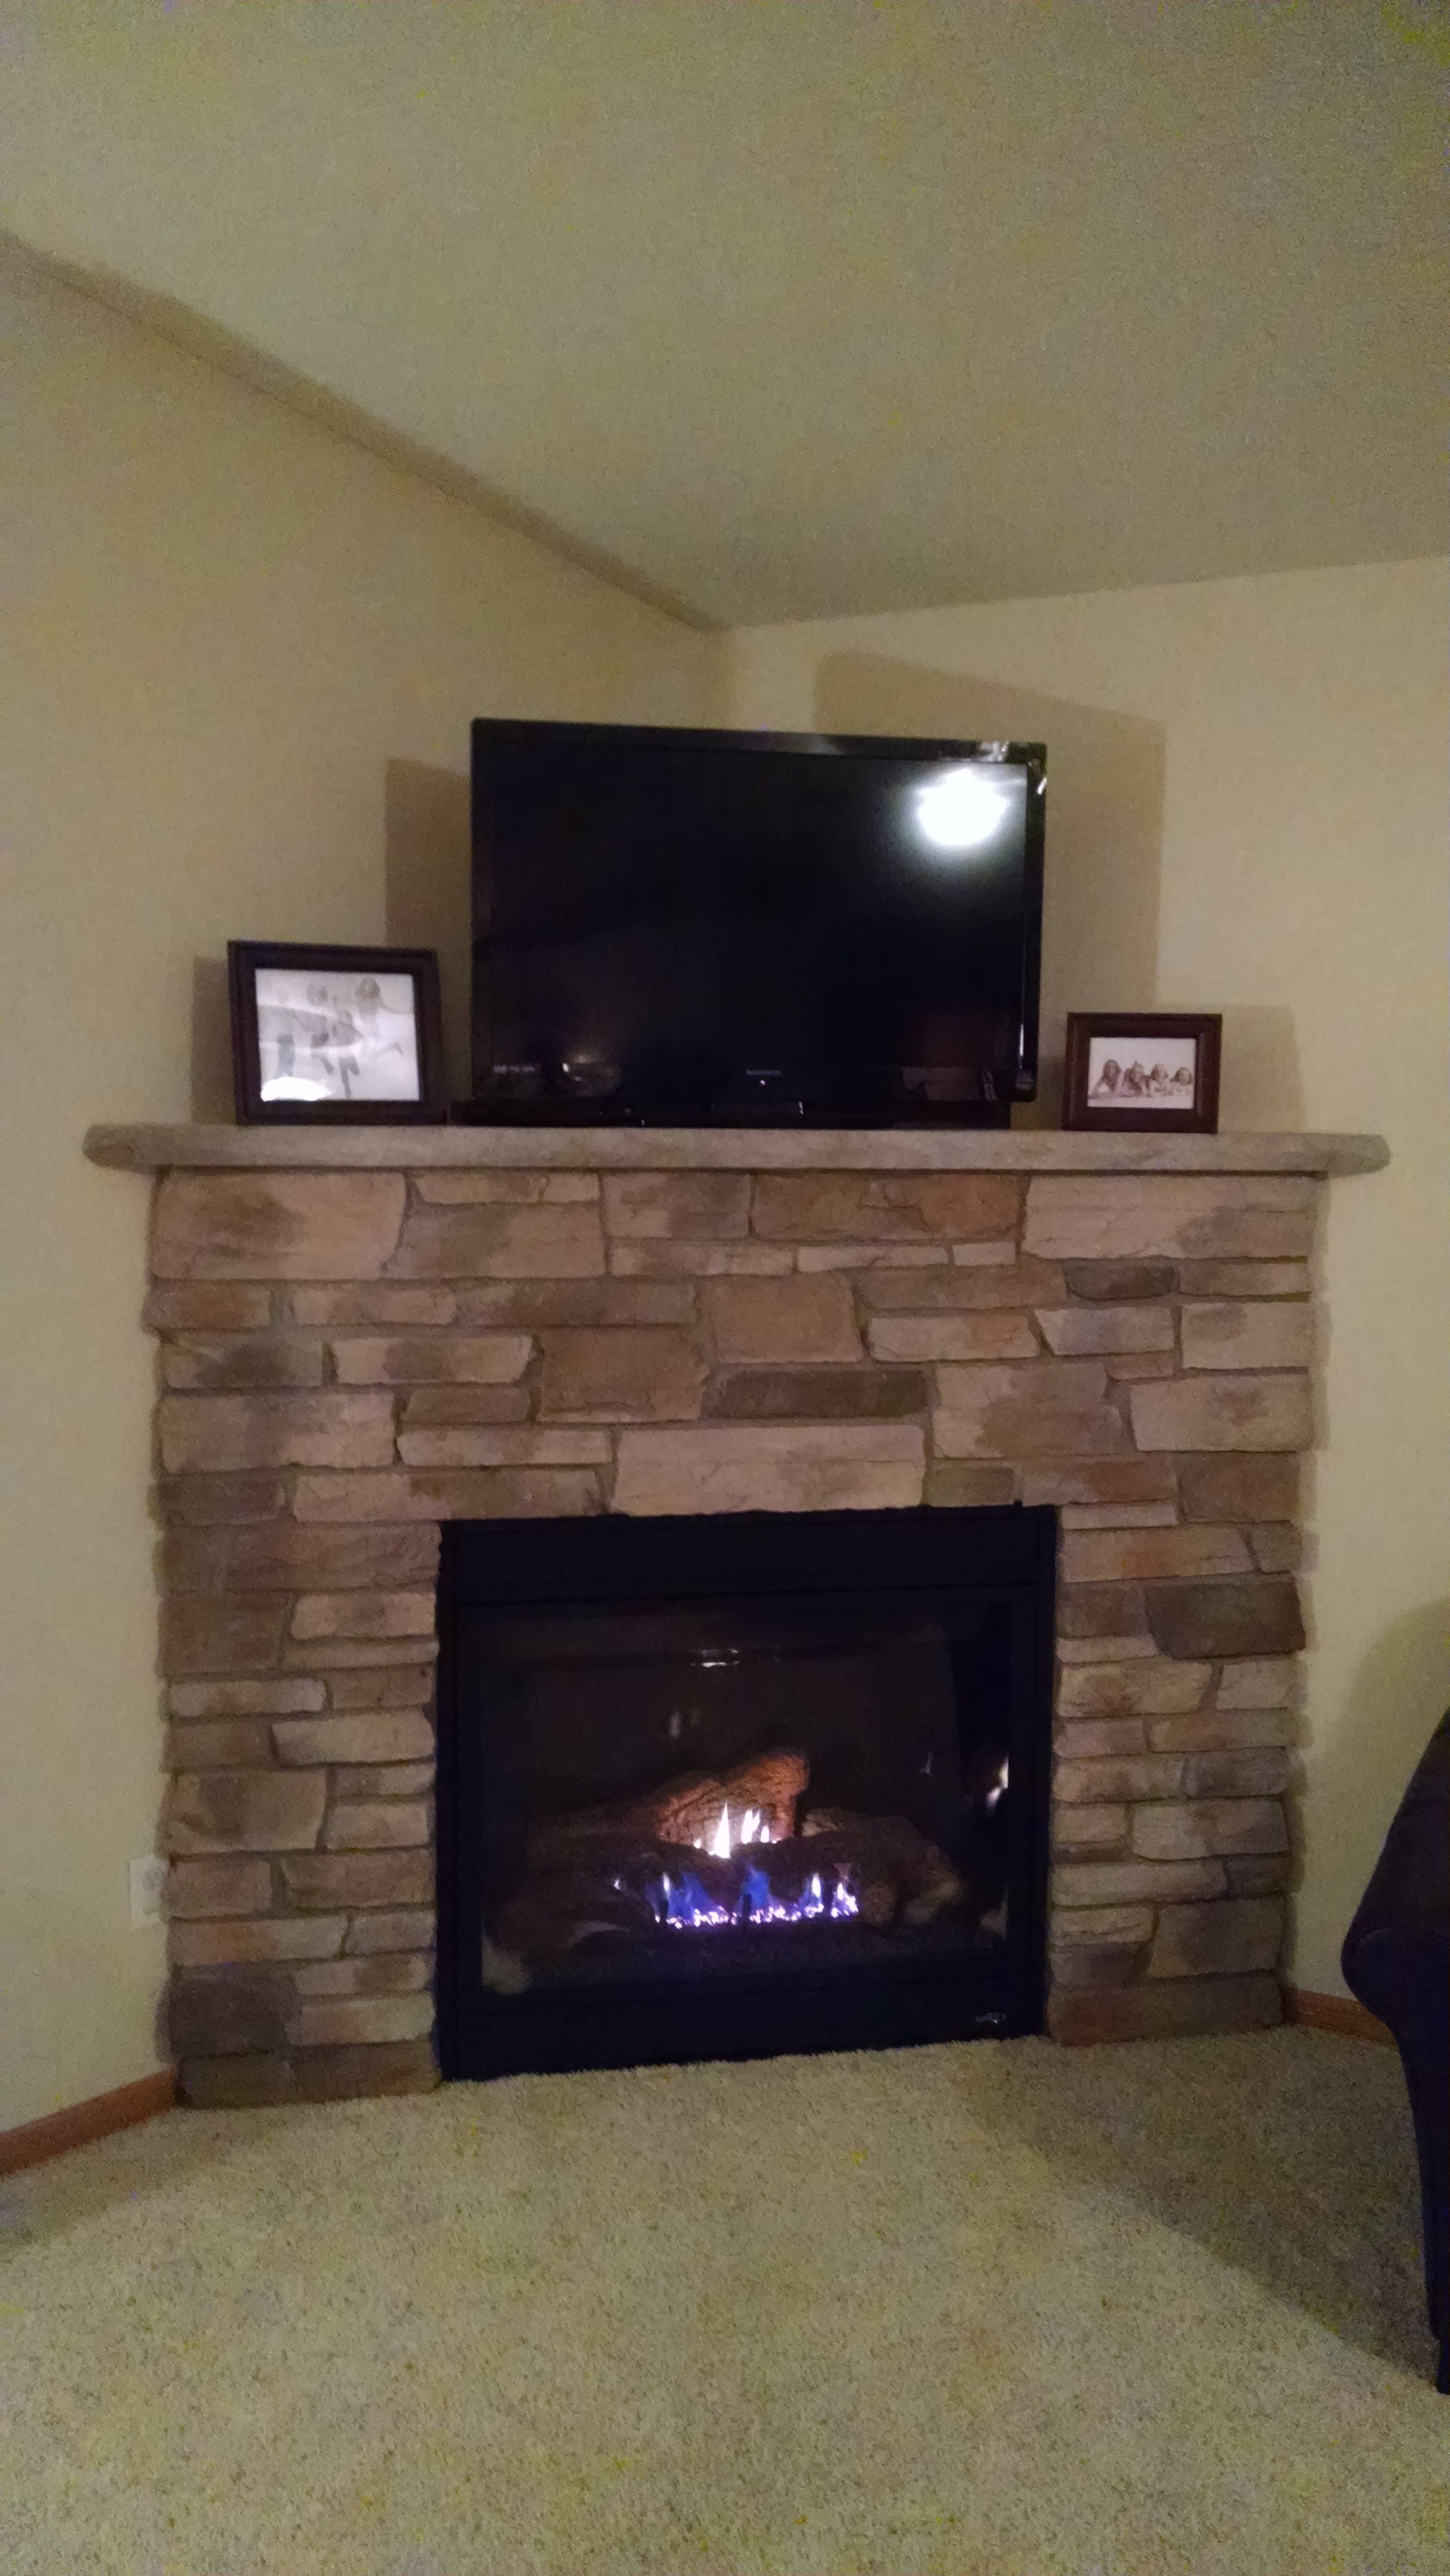 kozy heat thief river falls gas fireplace with stone surround